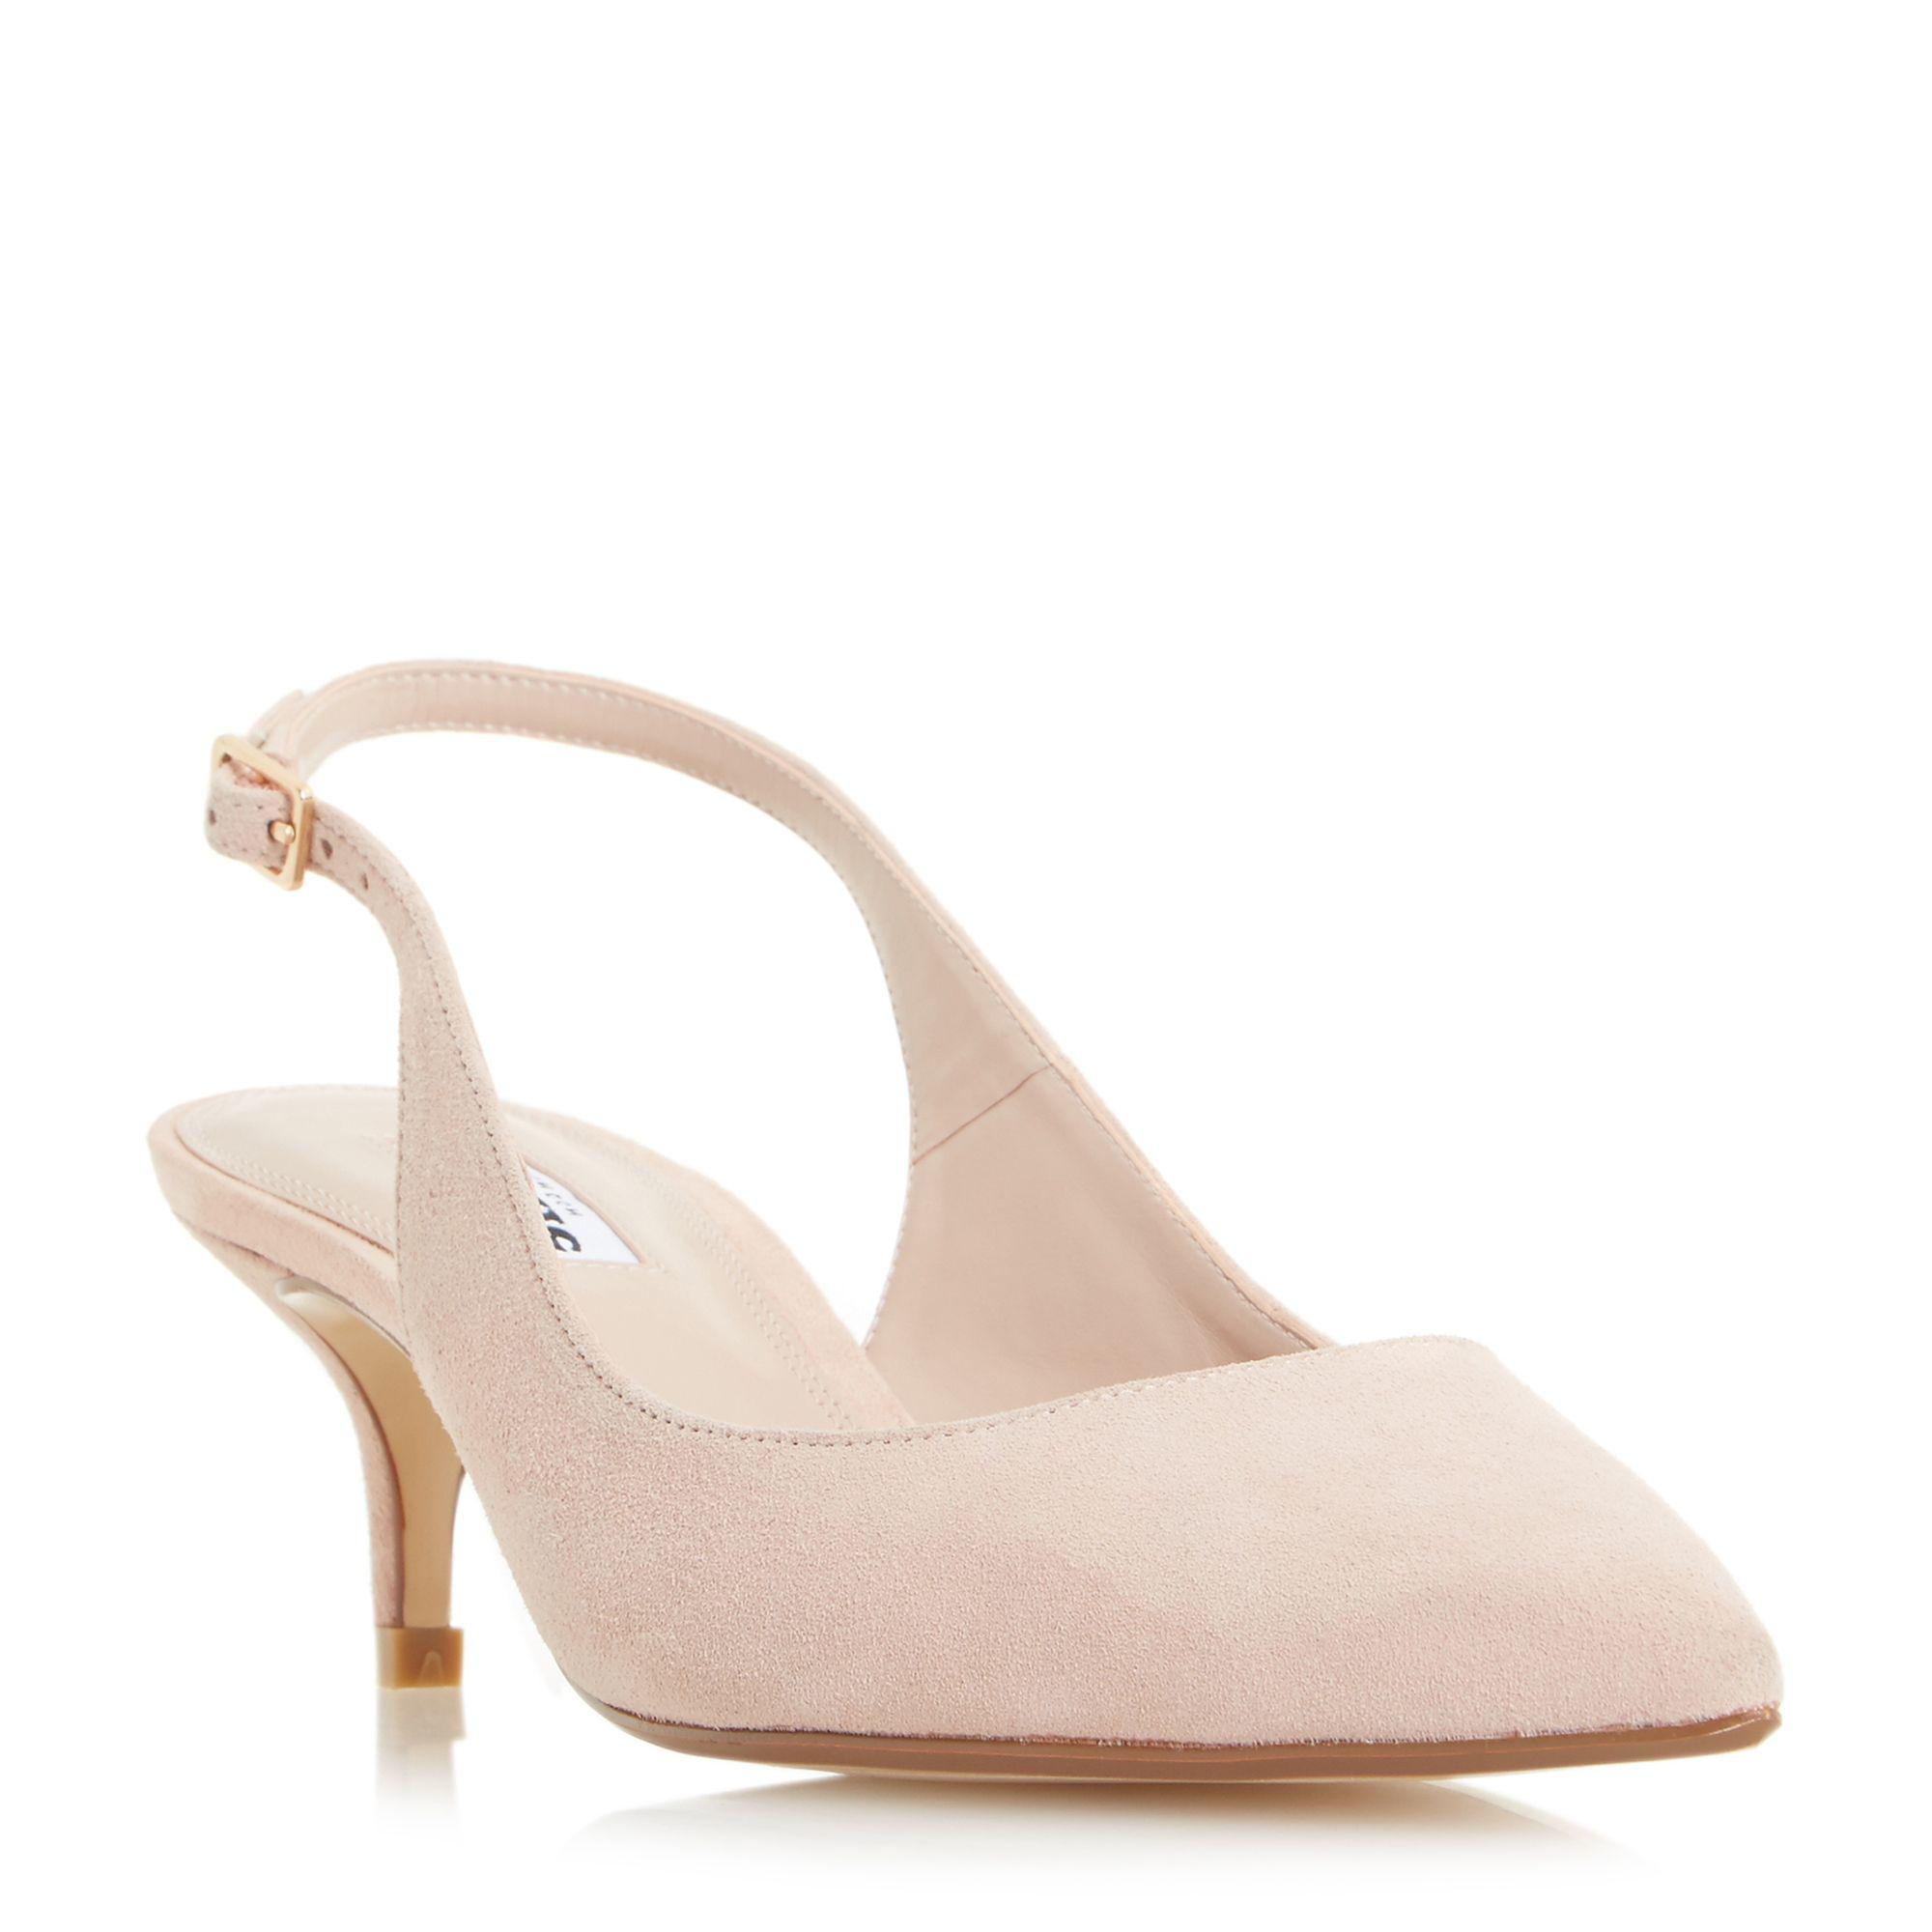 305a53ac532 Dune Blush  casandra  Kitten Heel Slingback Court Shoes in Pink - Lyst